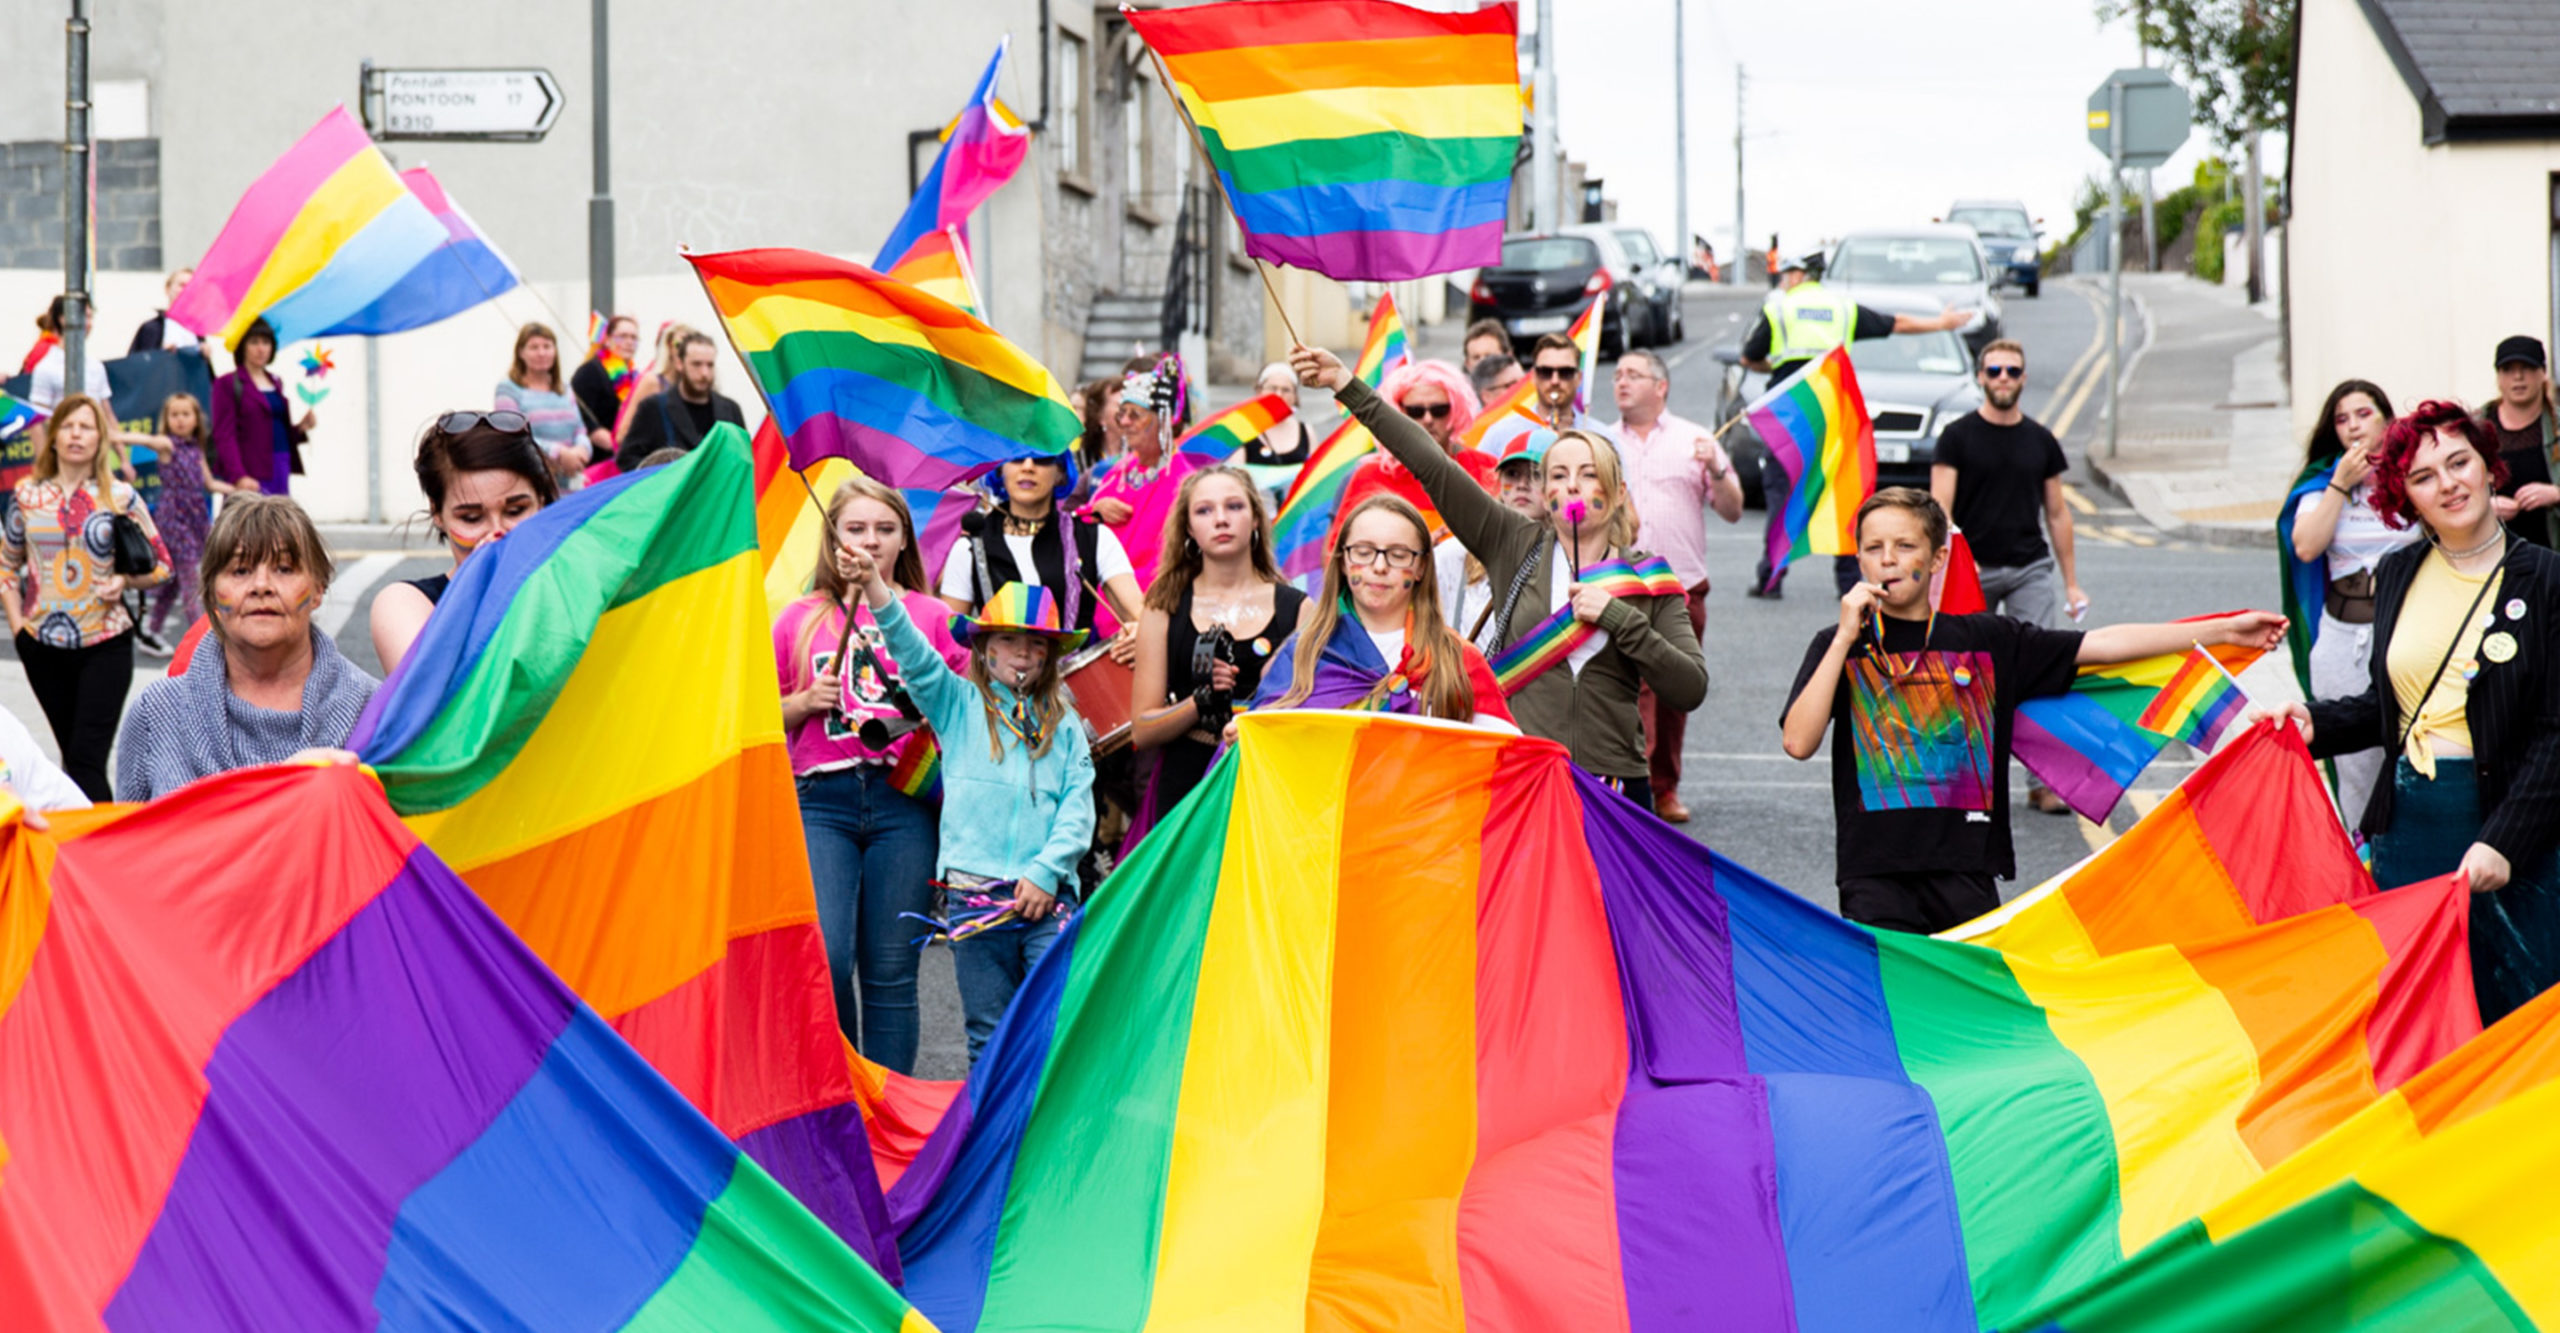 Mayo Pride Parade rainbow flag carried by members of Mayo's LGBT community at the Pride celebrations - PR photography by Sean Flynn, The Commercial Photographer Ireland